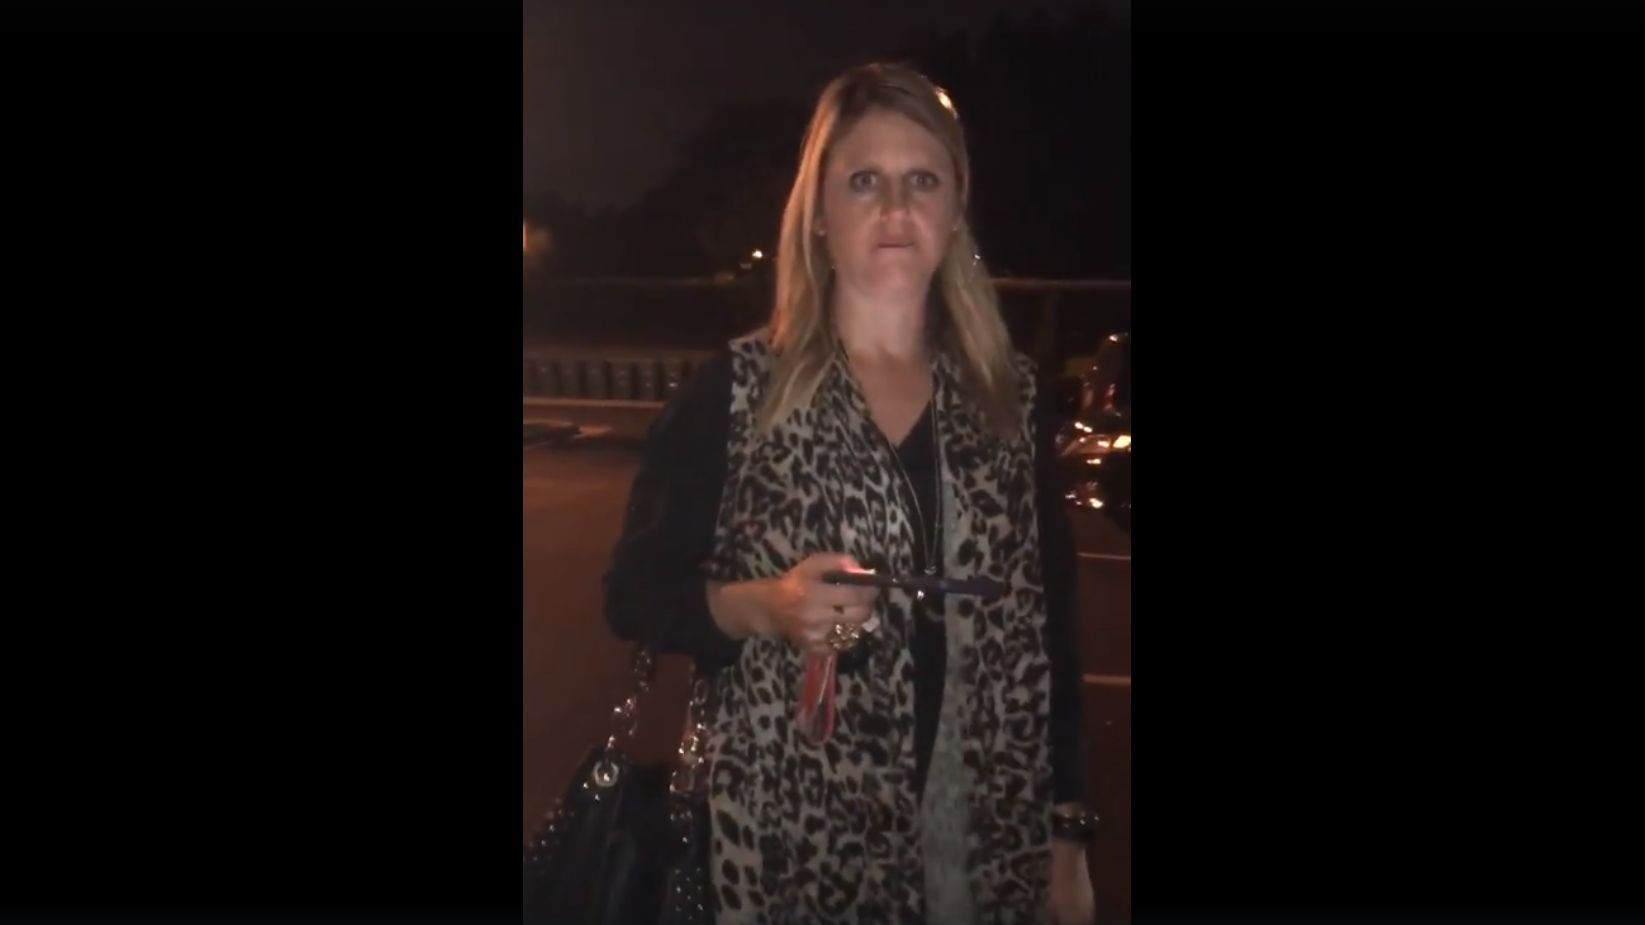 Charlotte Woman Who Harassed Black Neighbors Turns Herself In To Police